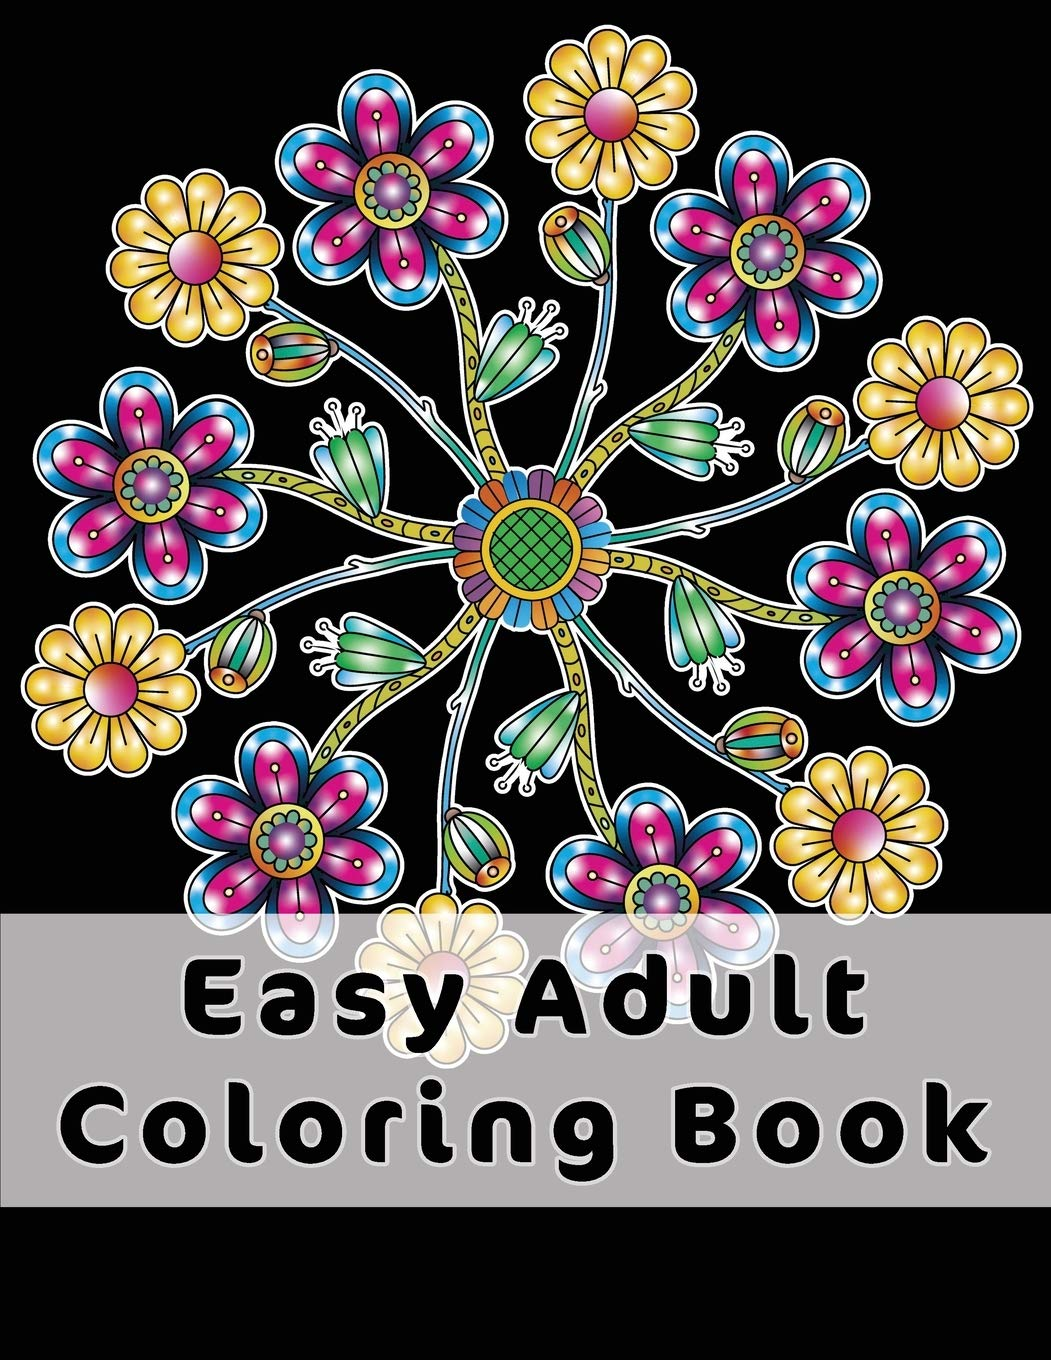 Easy Geometric Abstract Coloring Page For Kids | Geometric coloring pages,  Geometric patterns coloring, Pattern coloring pages | 1360x1051